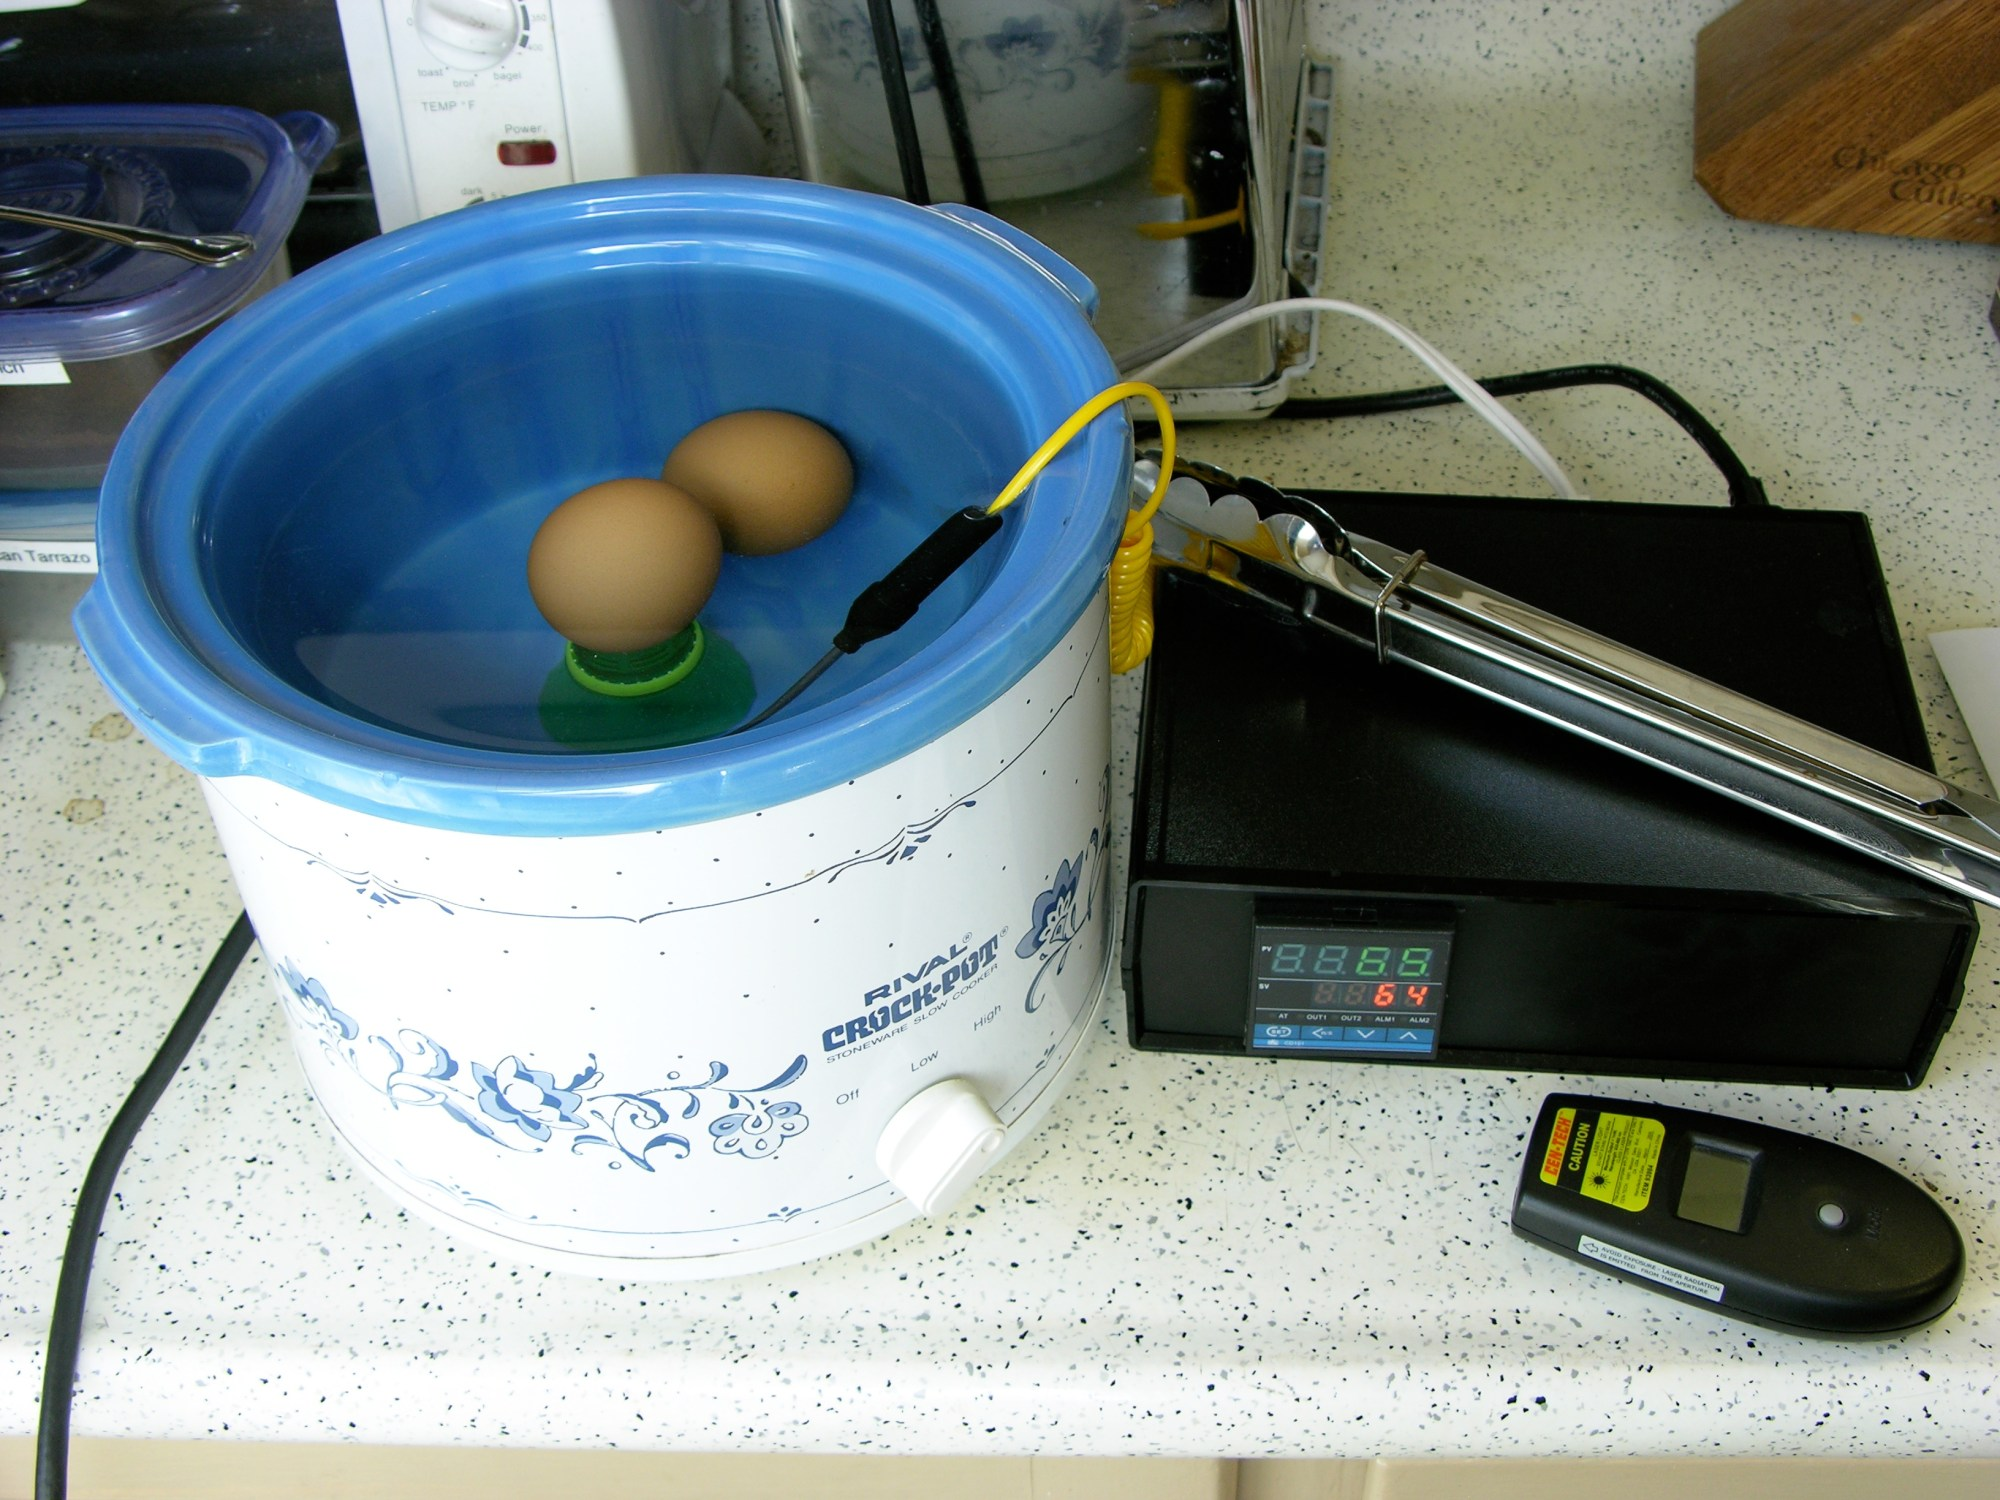 hight resolution of pid controlled crockpot cooking two eggs